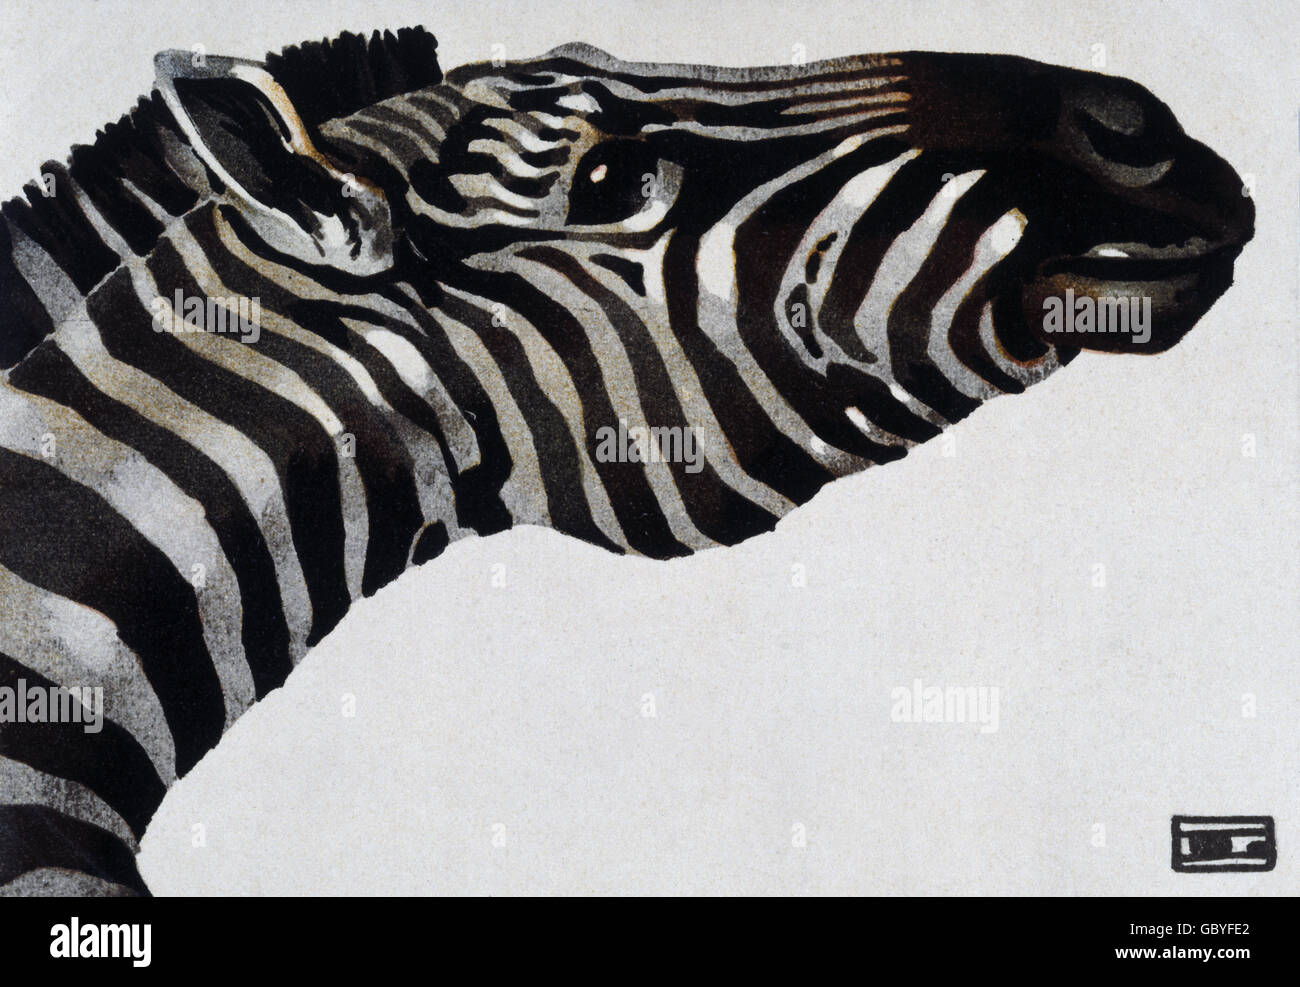 Zebra Poster Stock Photos Amp Zebra Poster Stock Images